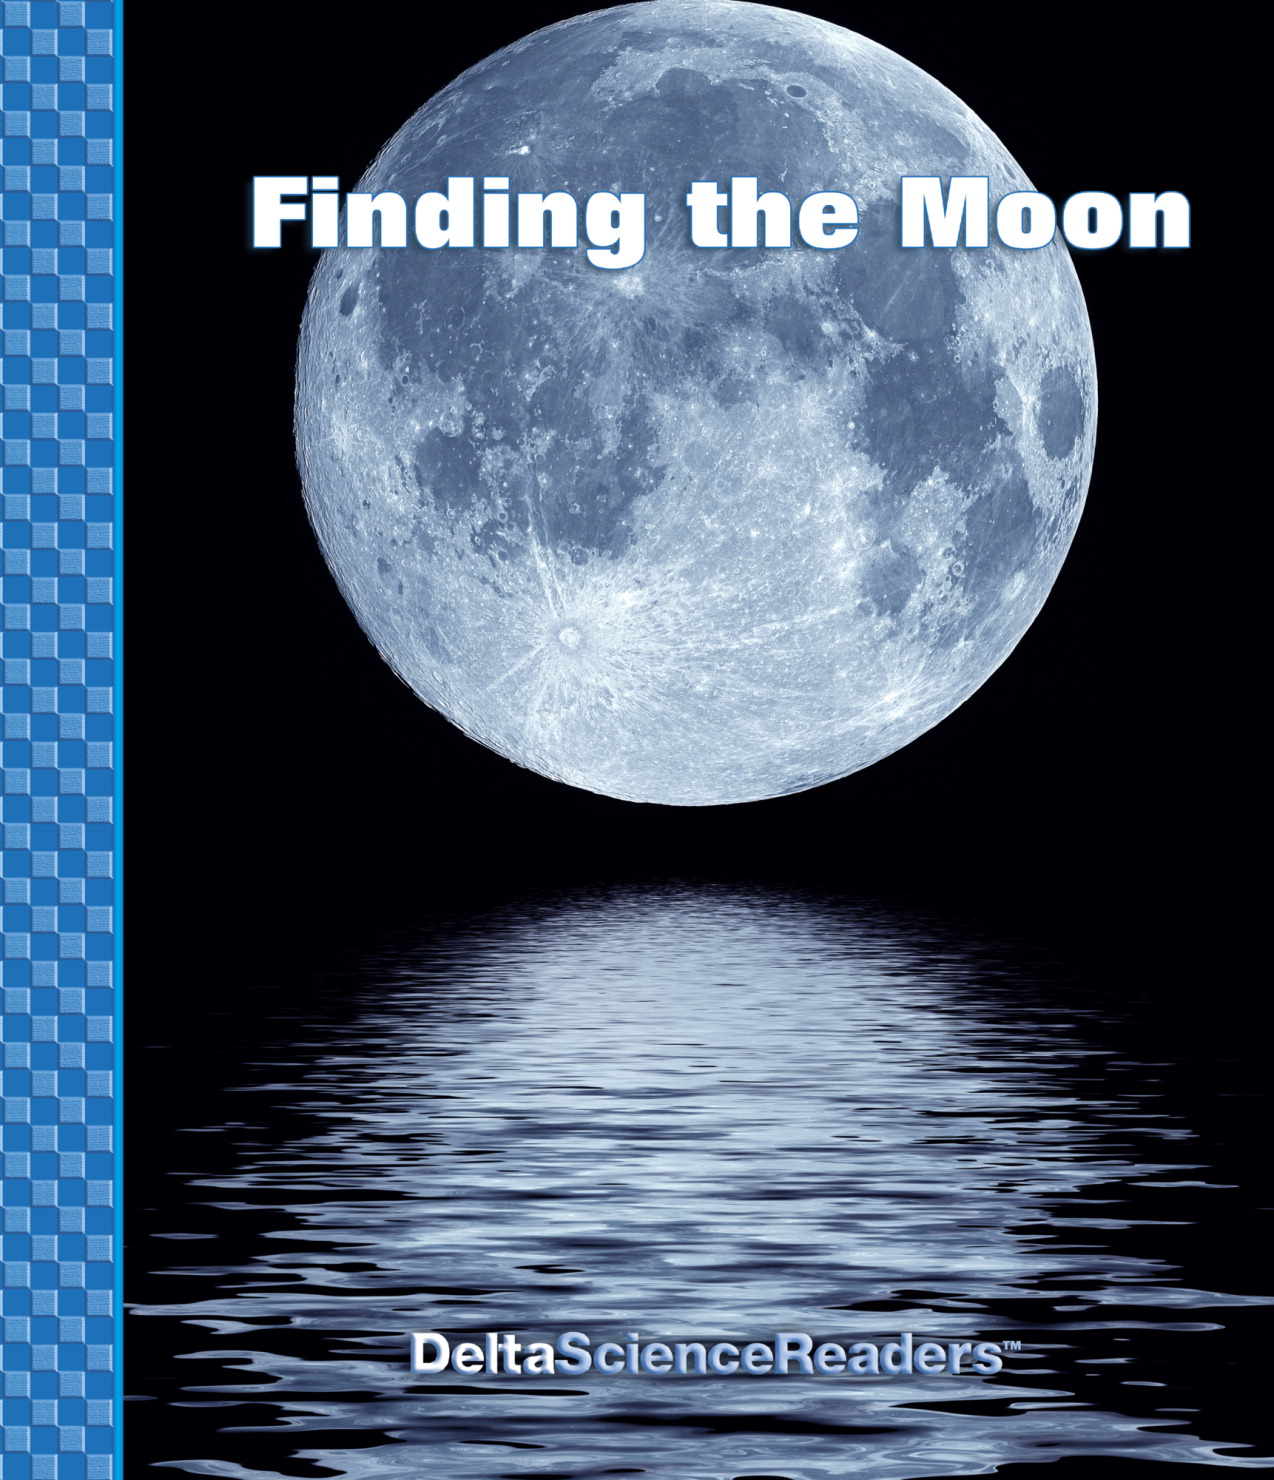 Delta Science Readers: Finding the Moon